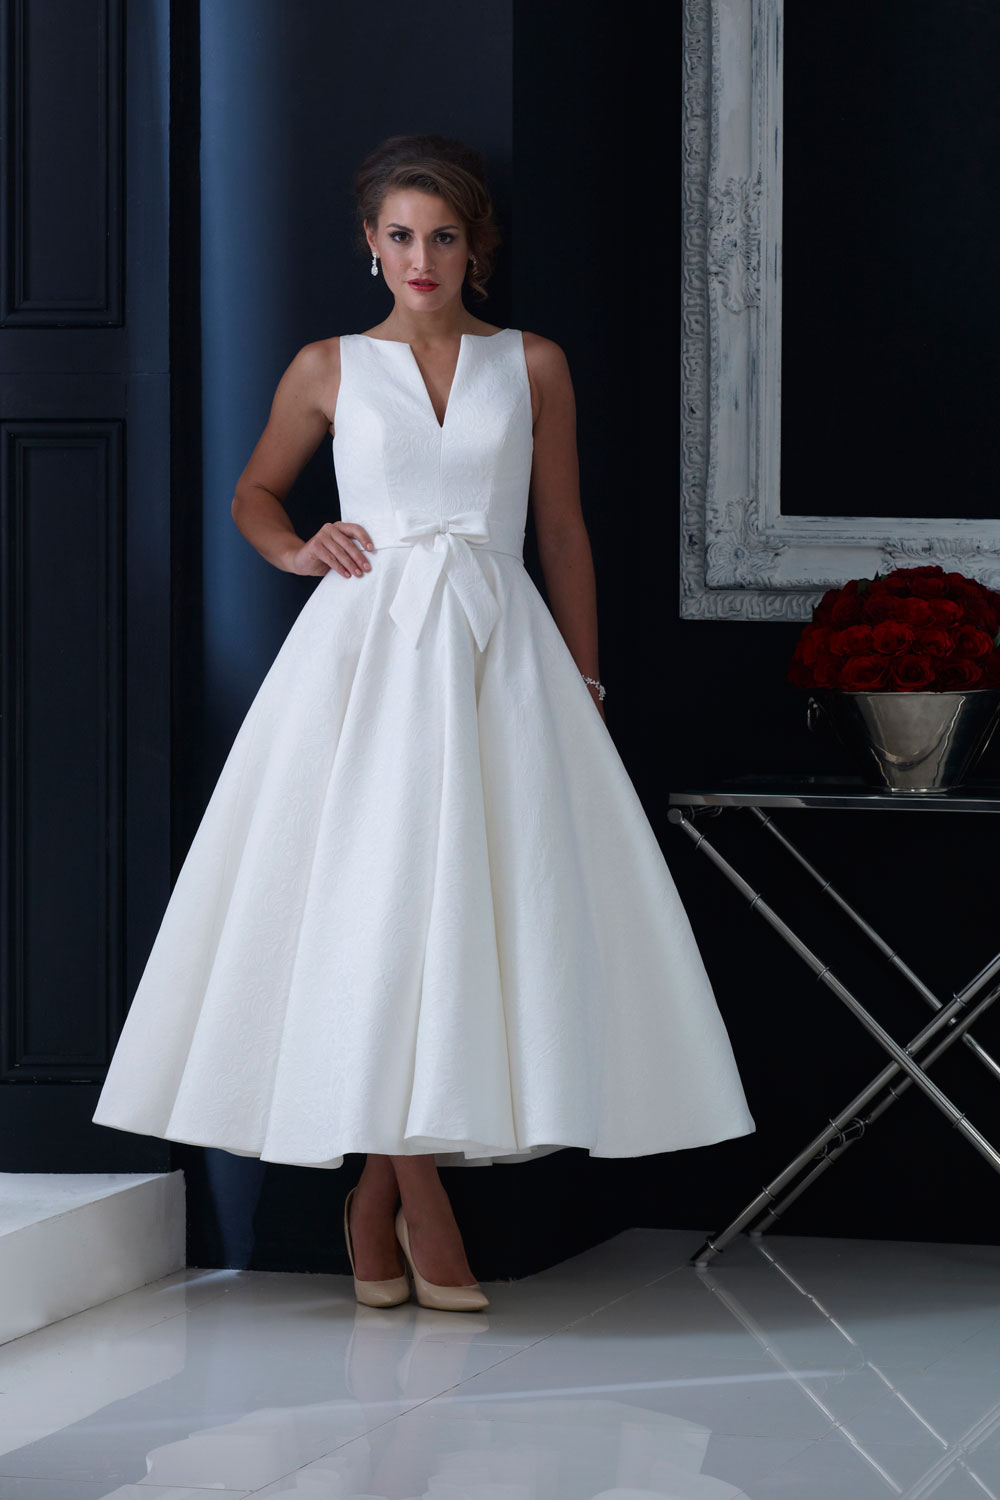 Weding Gowns With Pockets 02 - Weding Gowns With Pockets